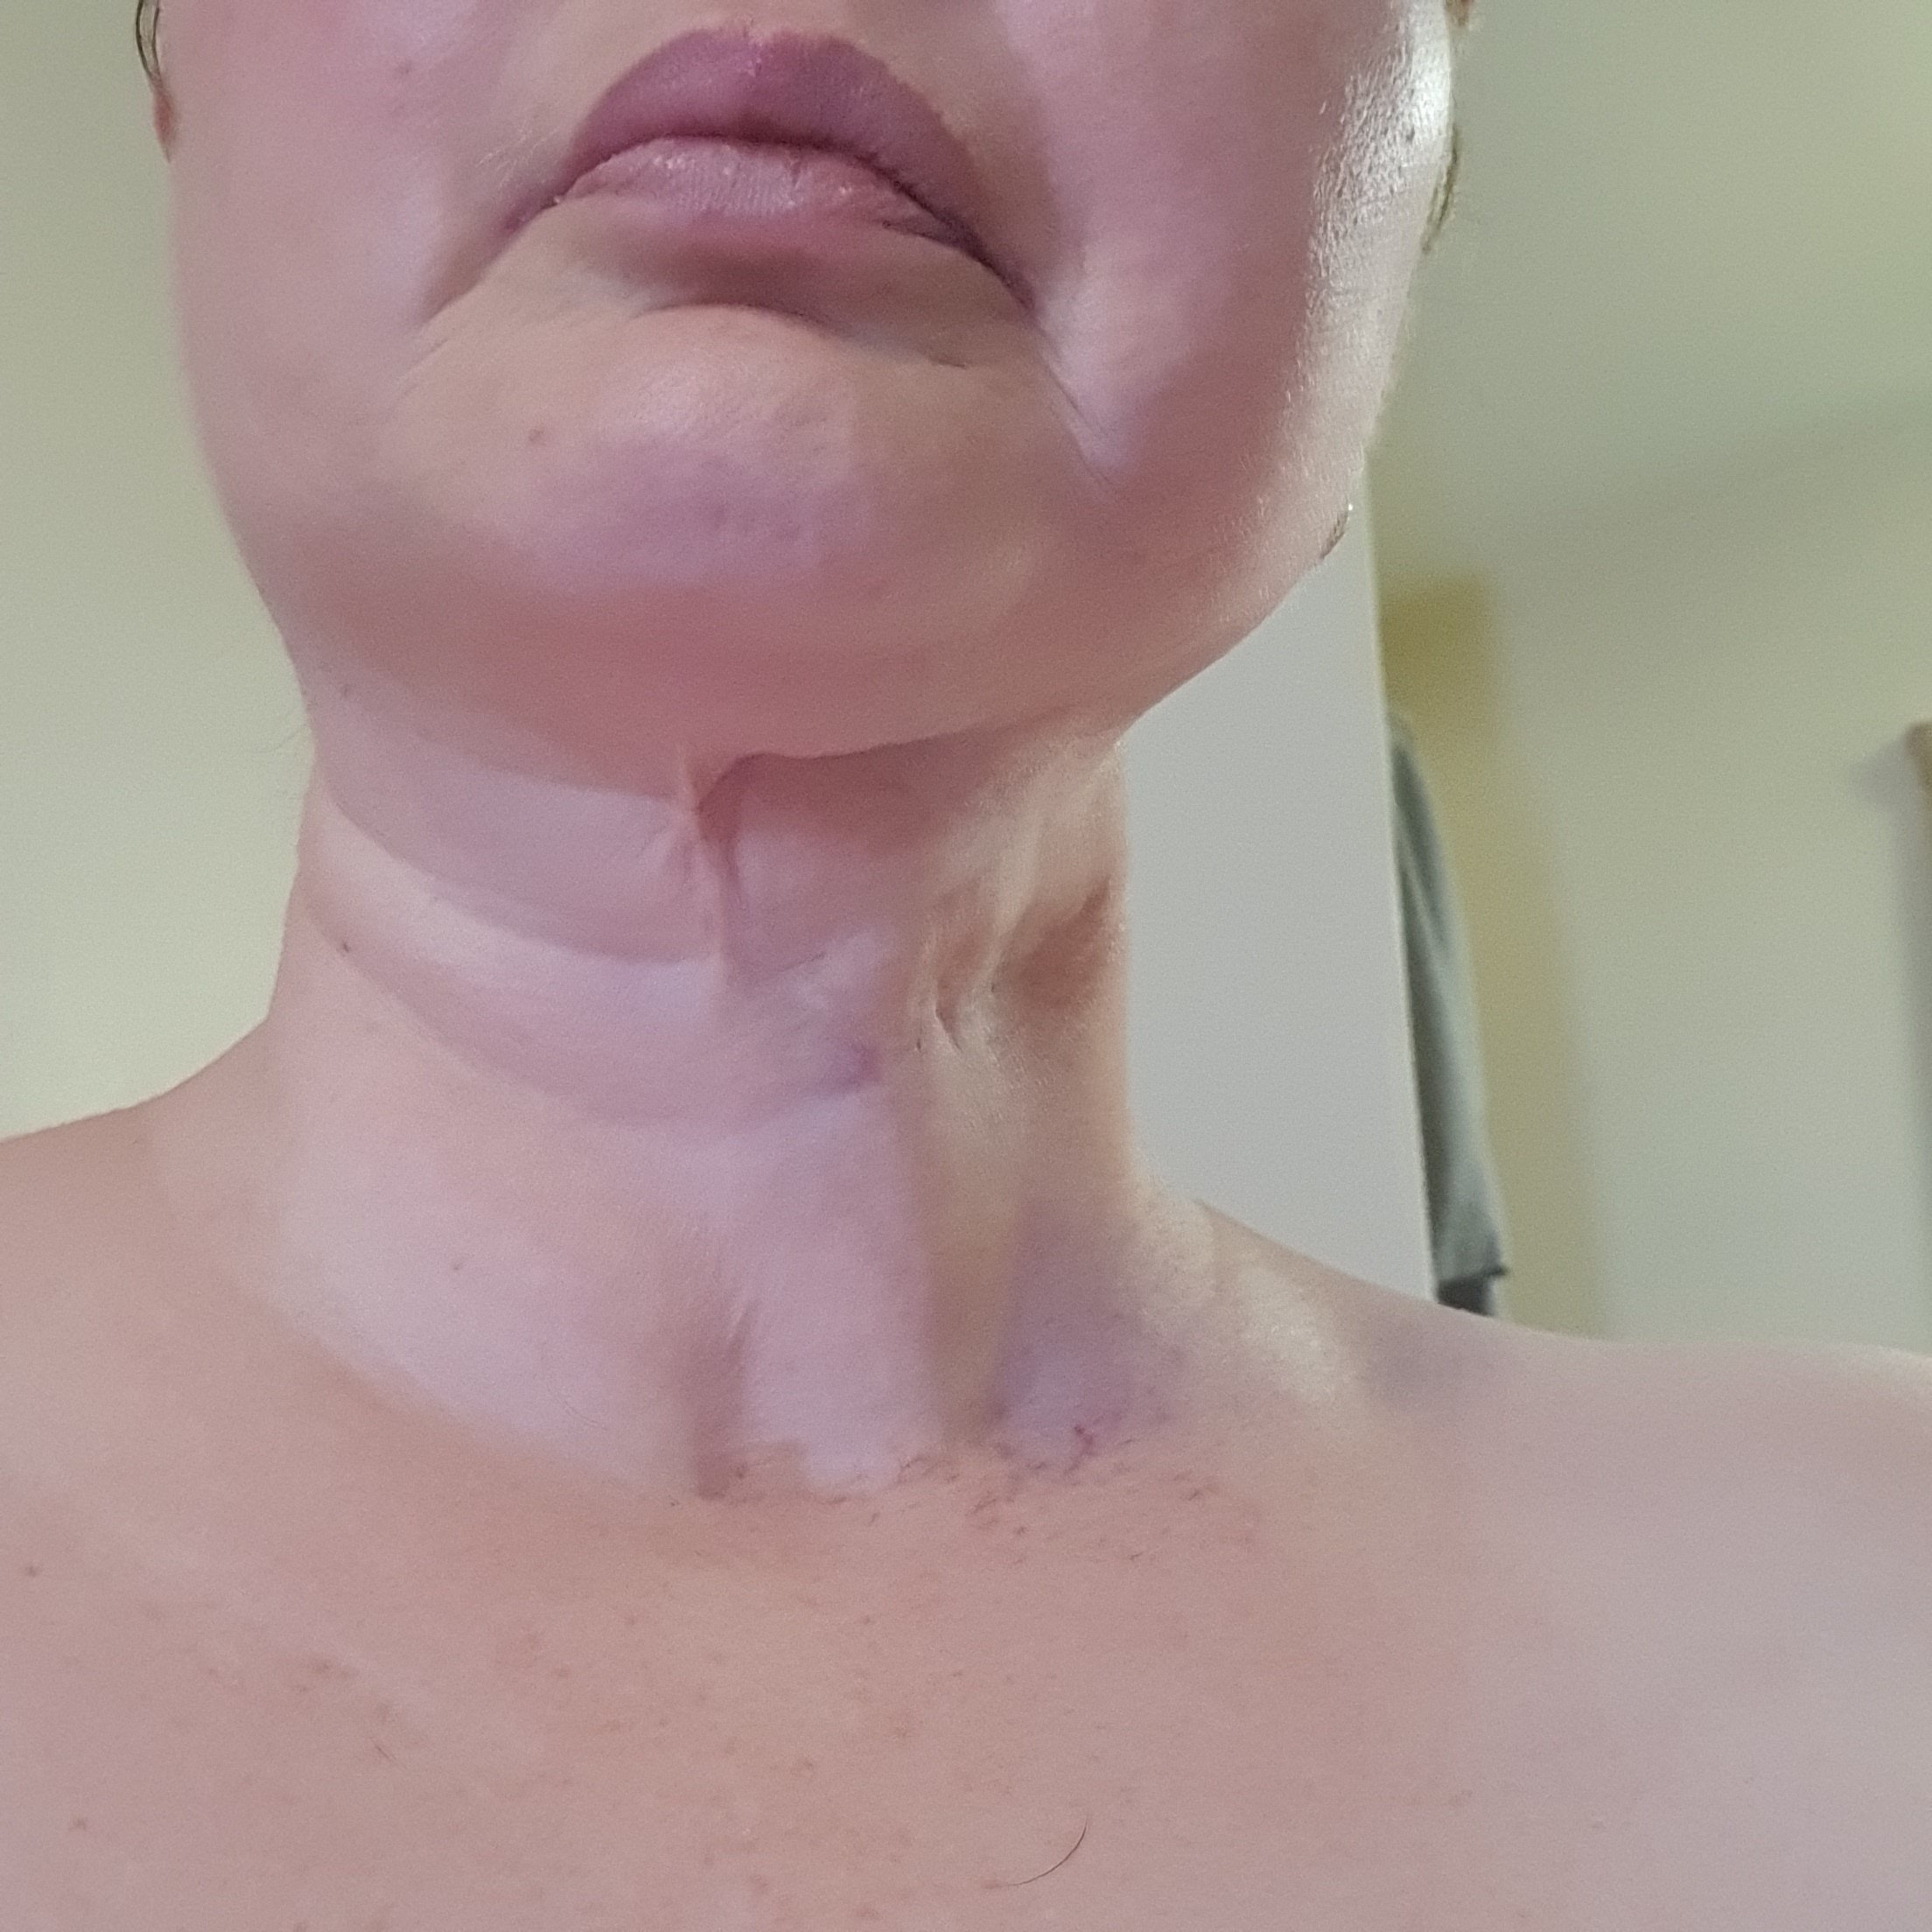 My neck: Radiation fibrosis syndrome